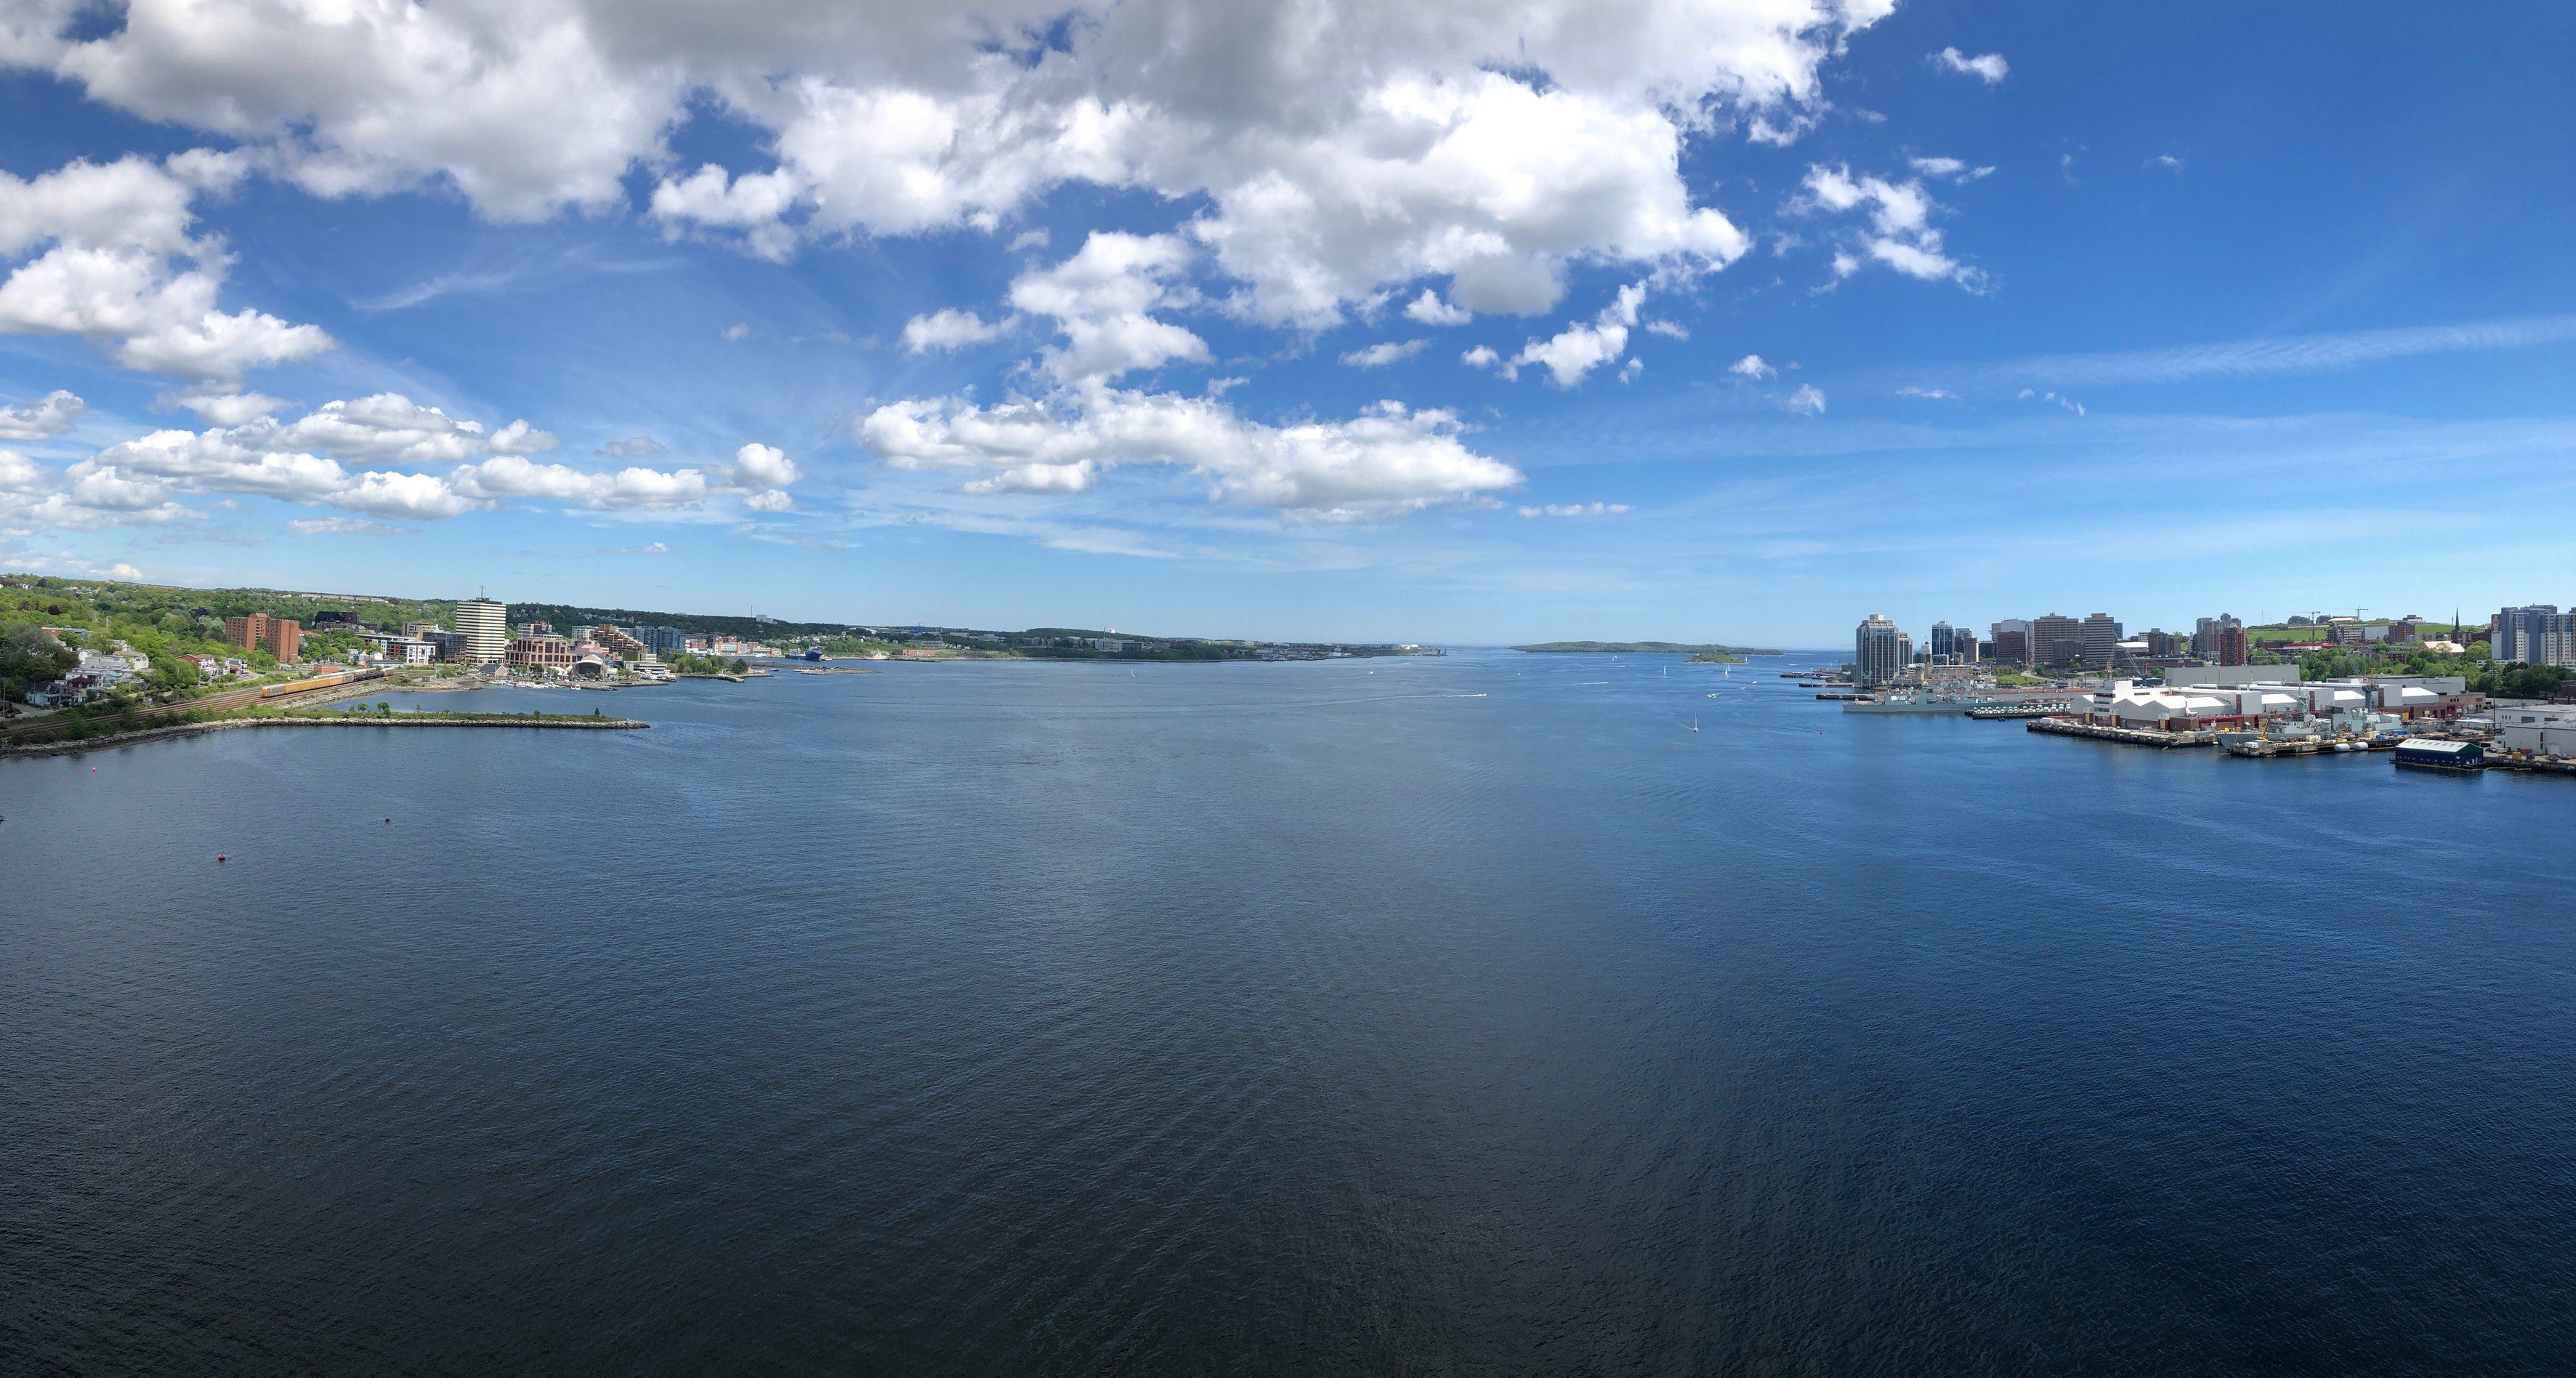 A panoramic view towards the mouth of the Halifax Harbour, spanning the Dartmouth waterfront to the Halifax waterfront, from the centre of the A. Murray MacKay Bridge.